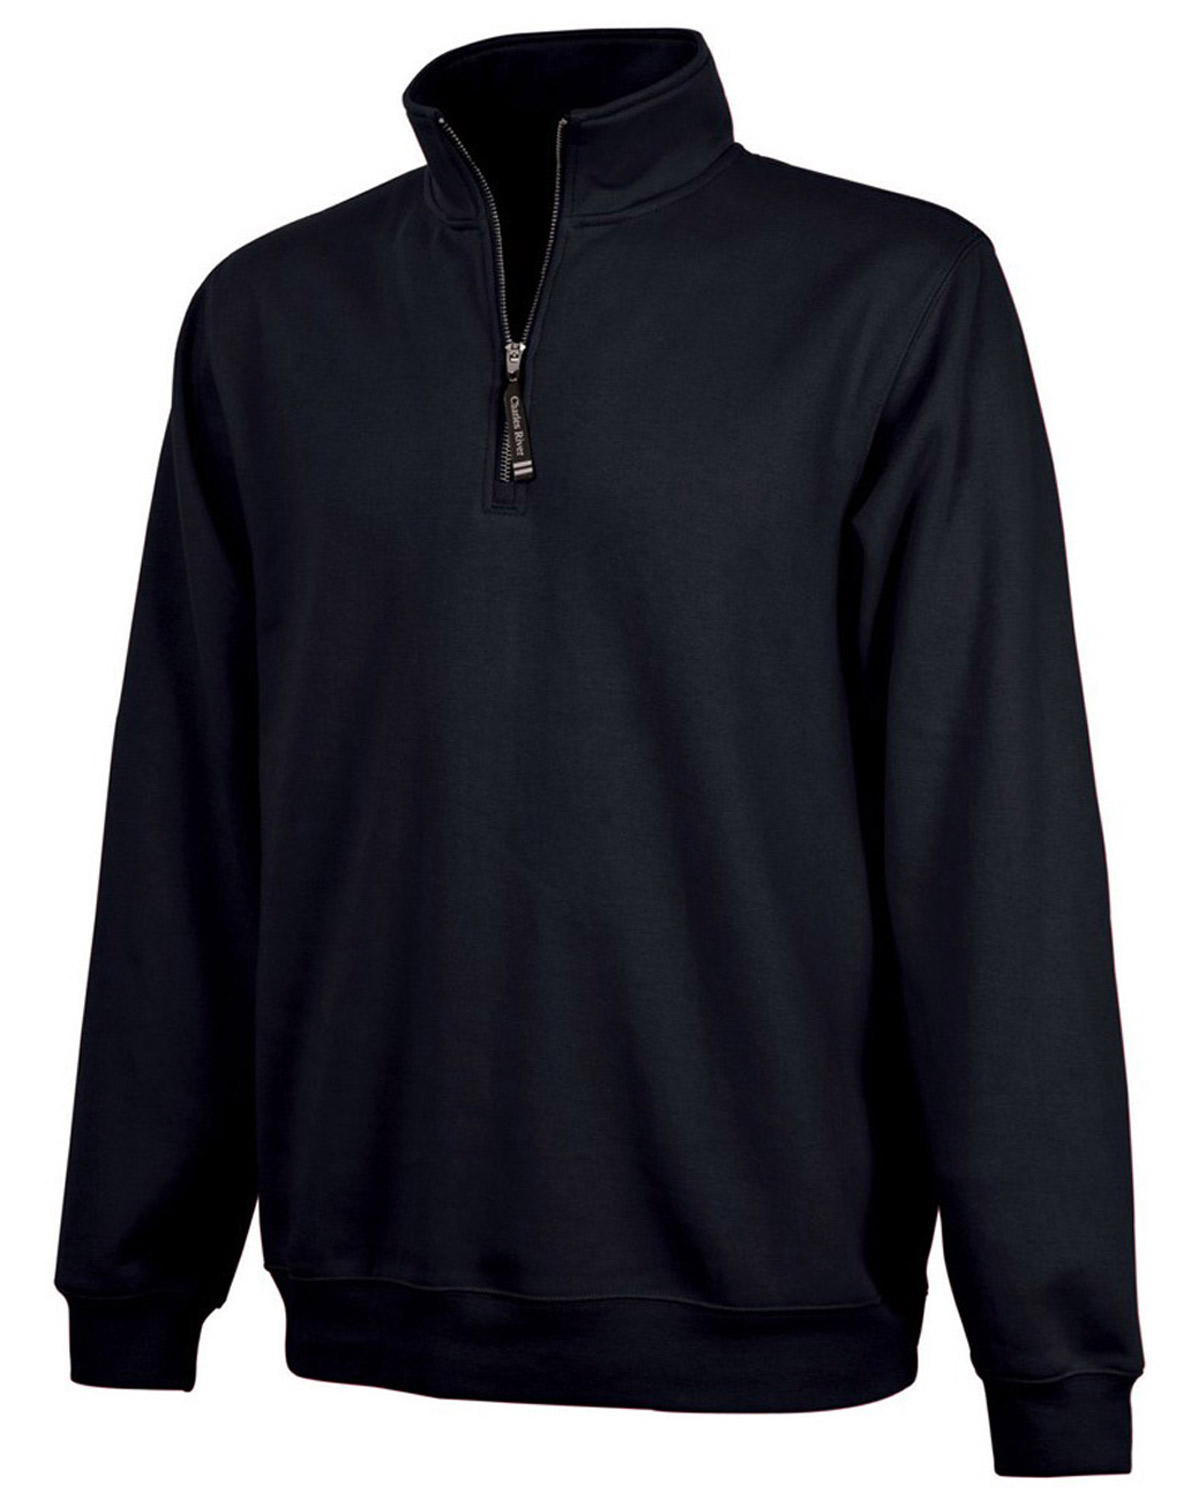 Charles River Apparel 9359 Unisex Crosswind Quarter Zip Sweatshirt at GotApparel